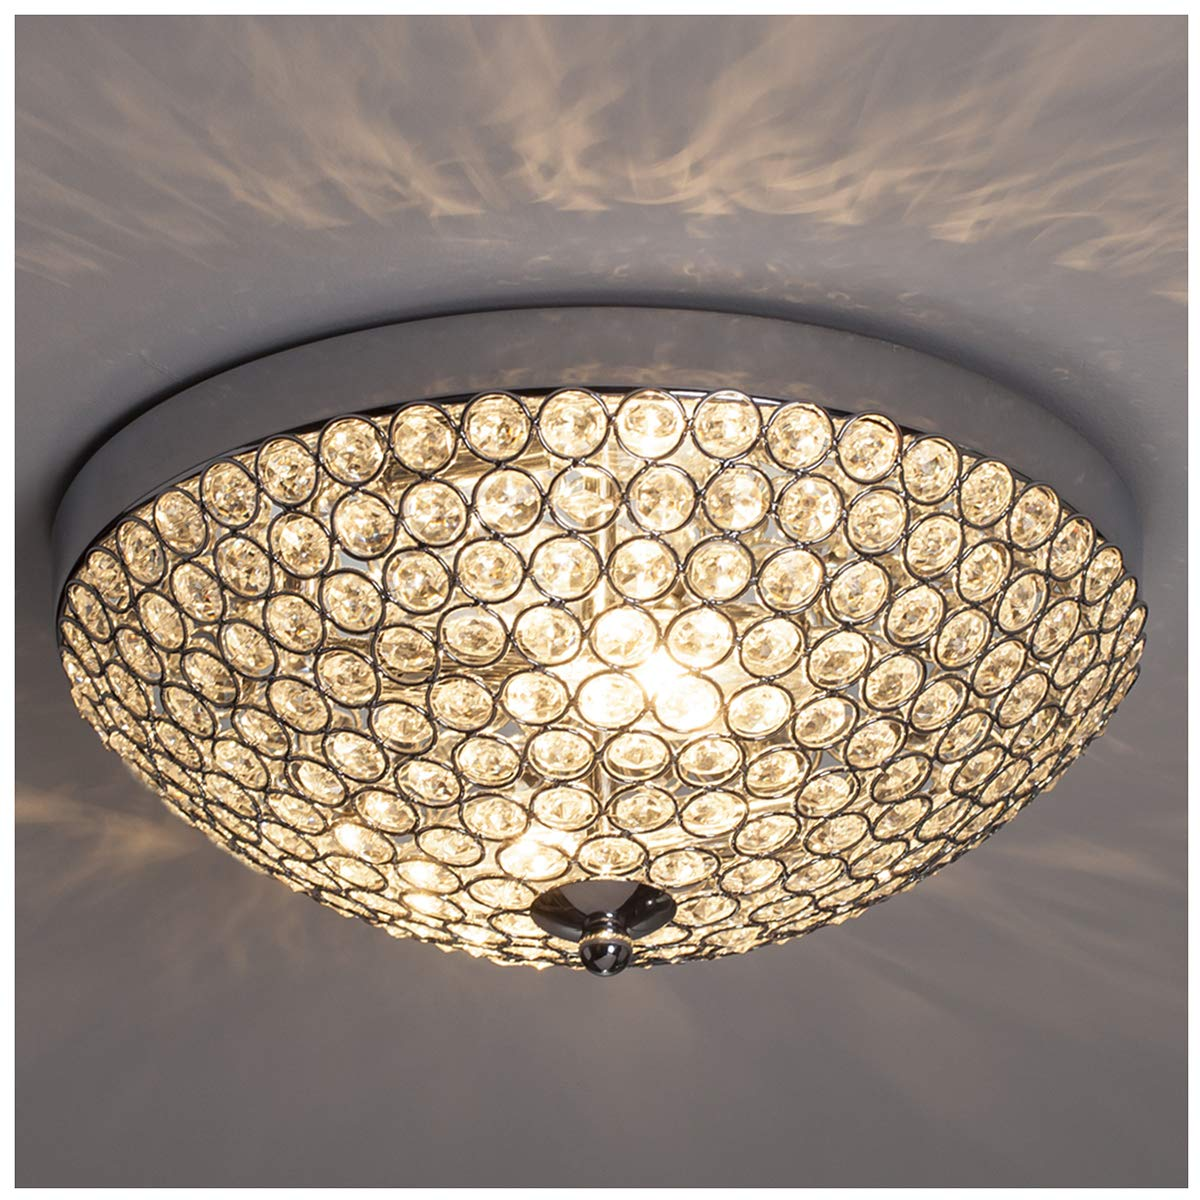 Glanzhaus modern design 11 8 inches small clear crystal beads bowl shaped chrome finish base chandelier crystal ceiling light flush mount ceiling light